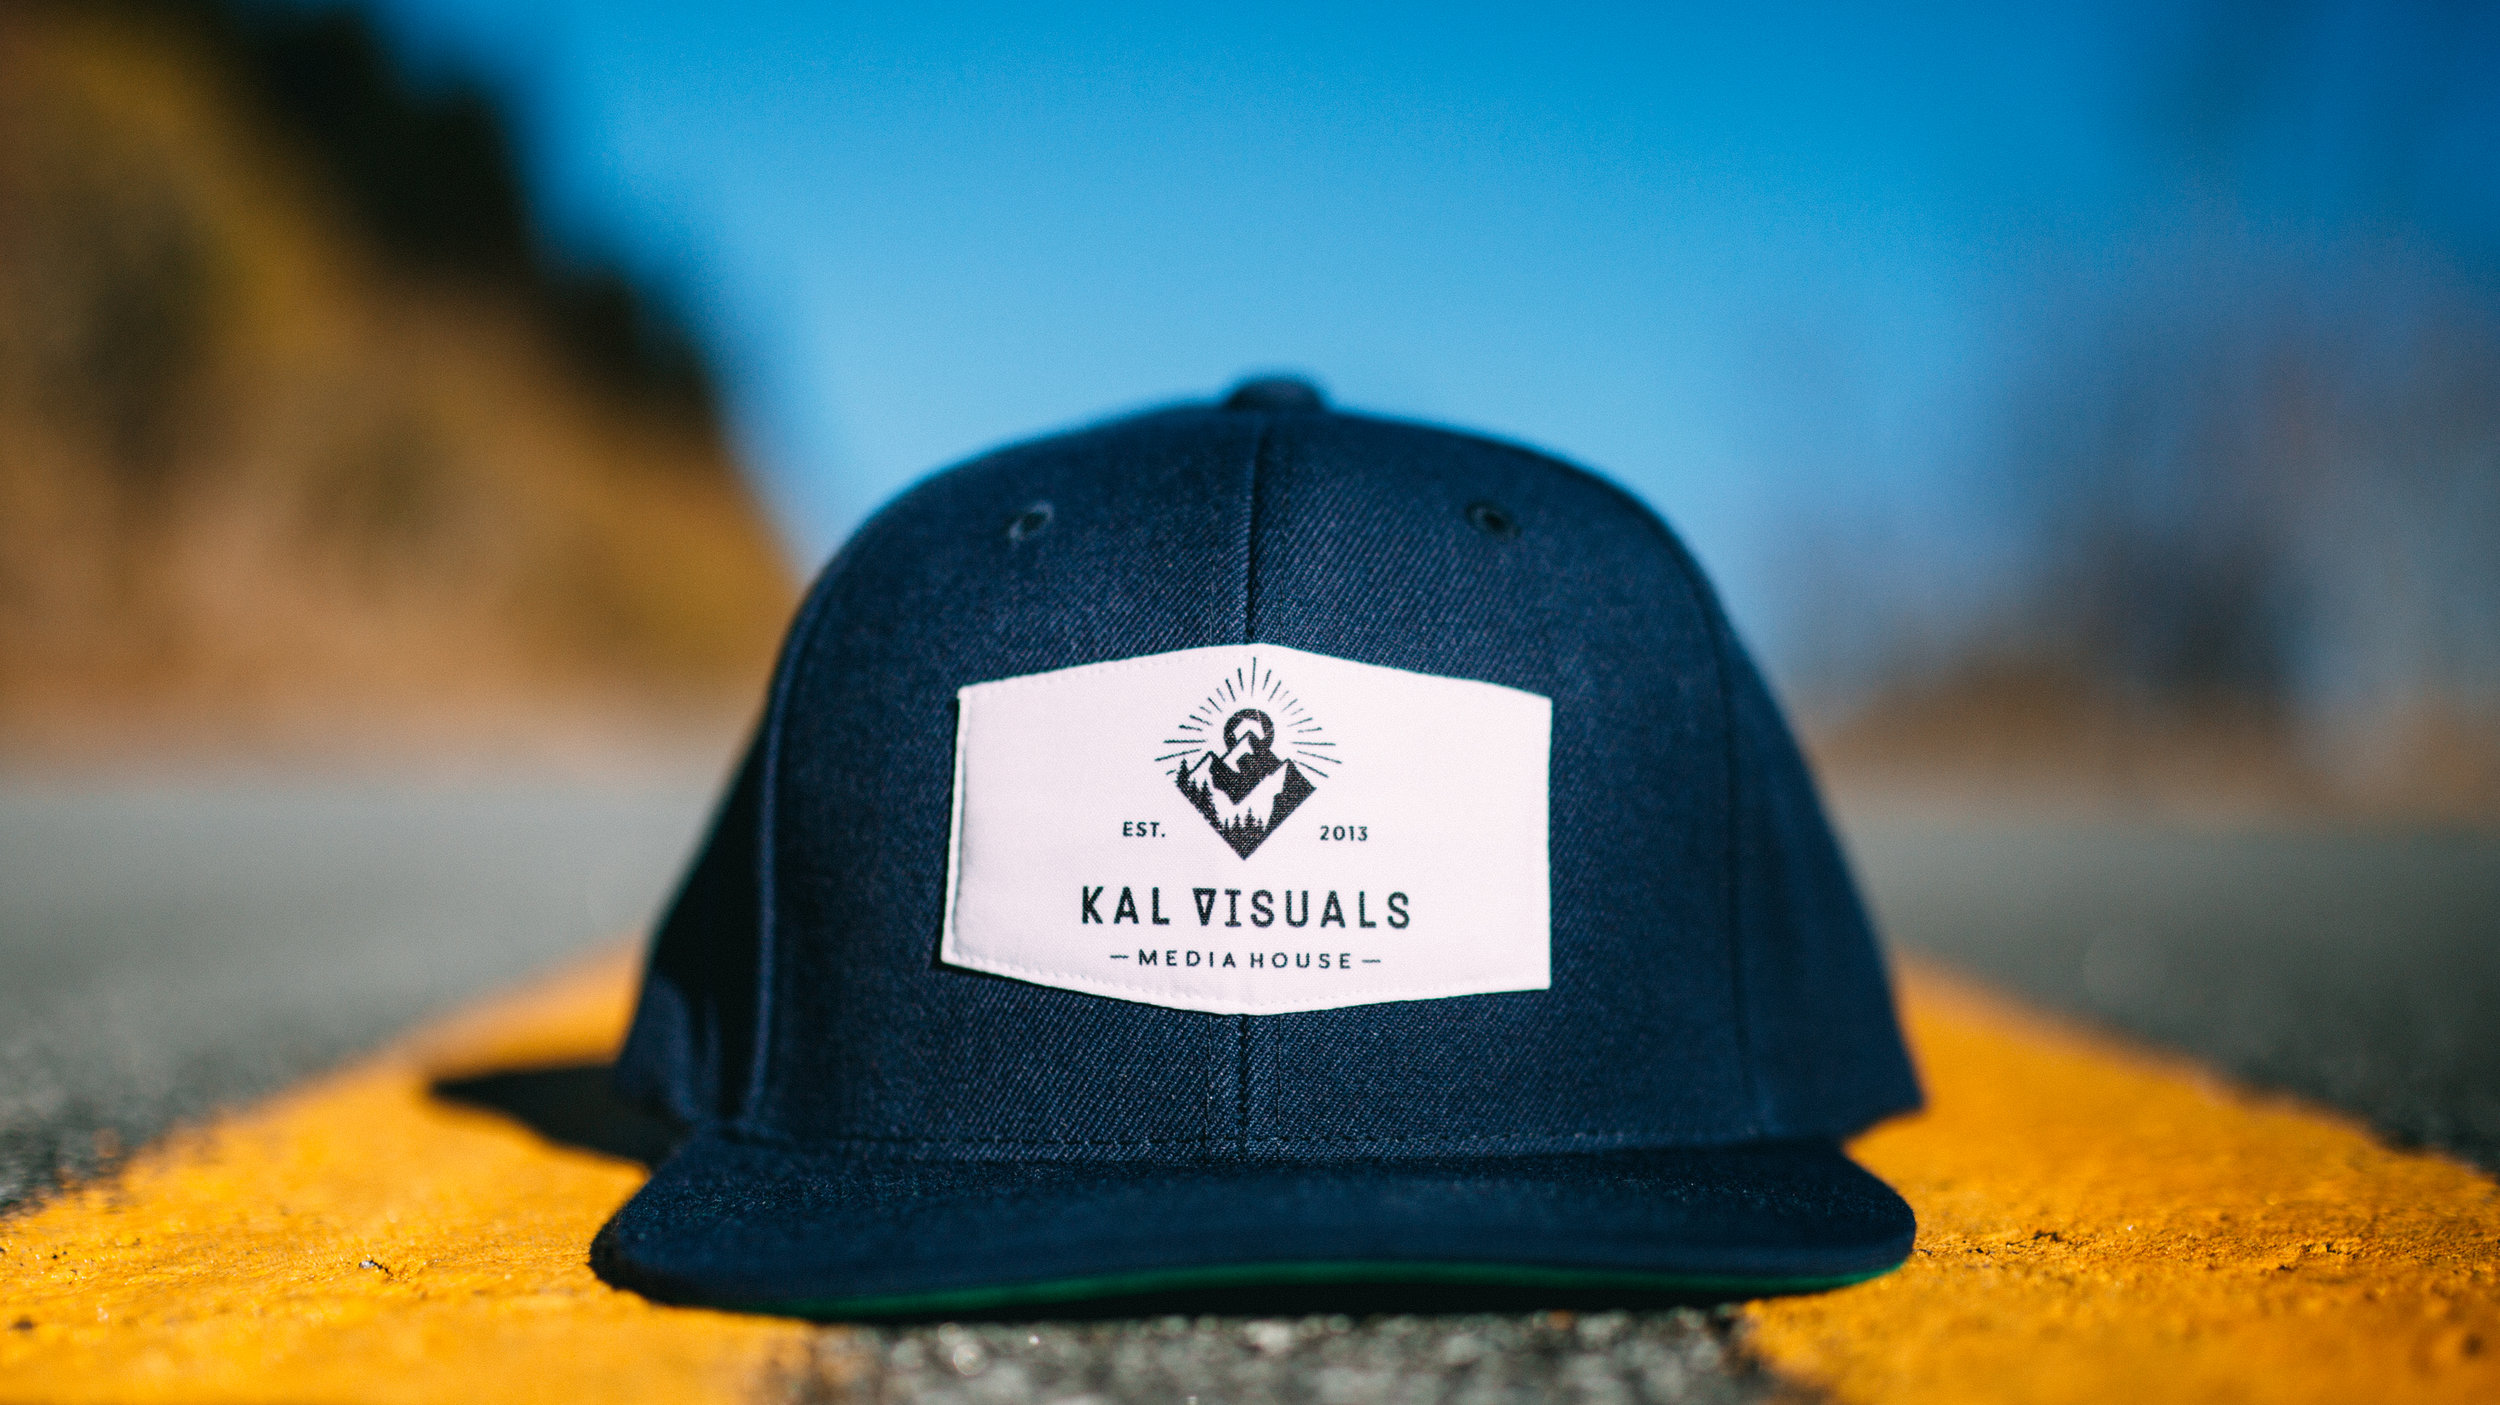 kal-visuals-blue-hat